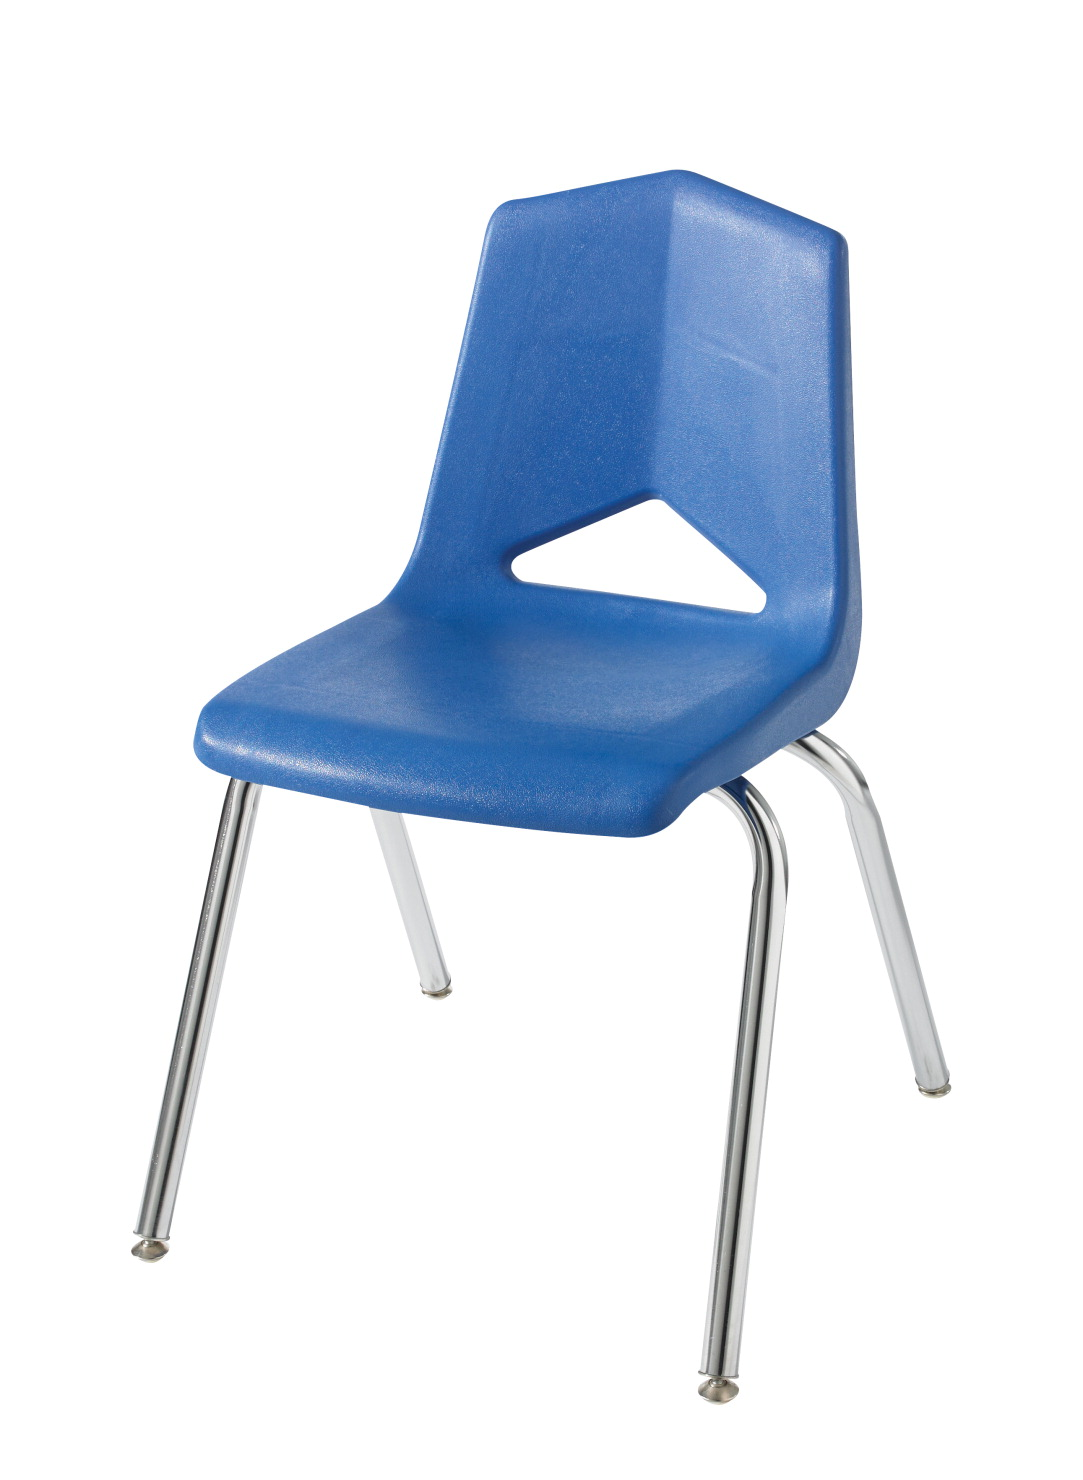 Classroom Select Royal Seating 1100 Four Leg Soft Plastic Shell Chair, 16 Inch Seat, Chrome Frame, Various Options